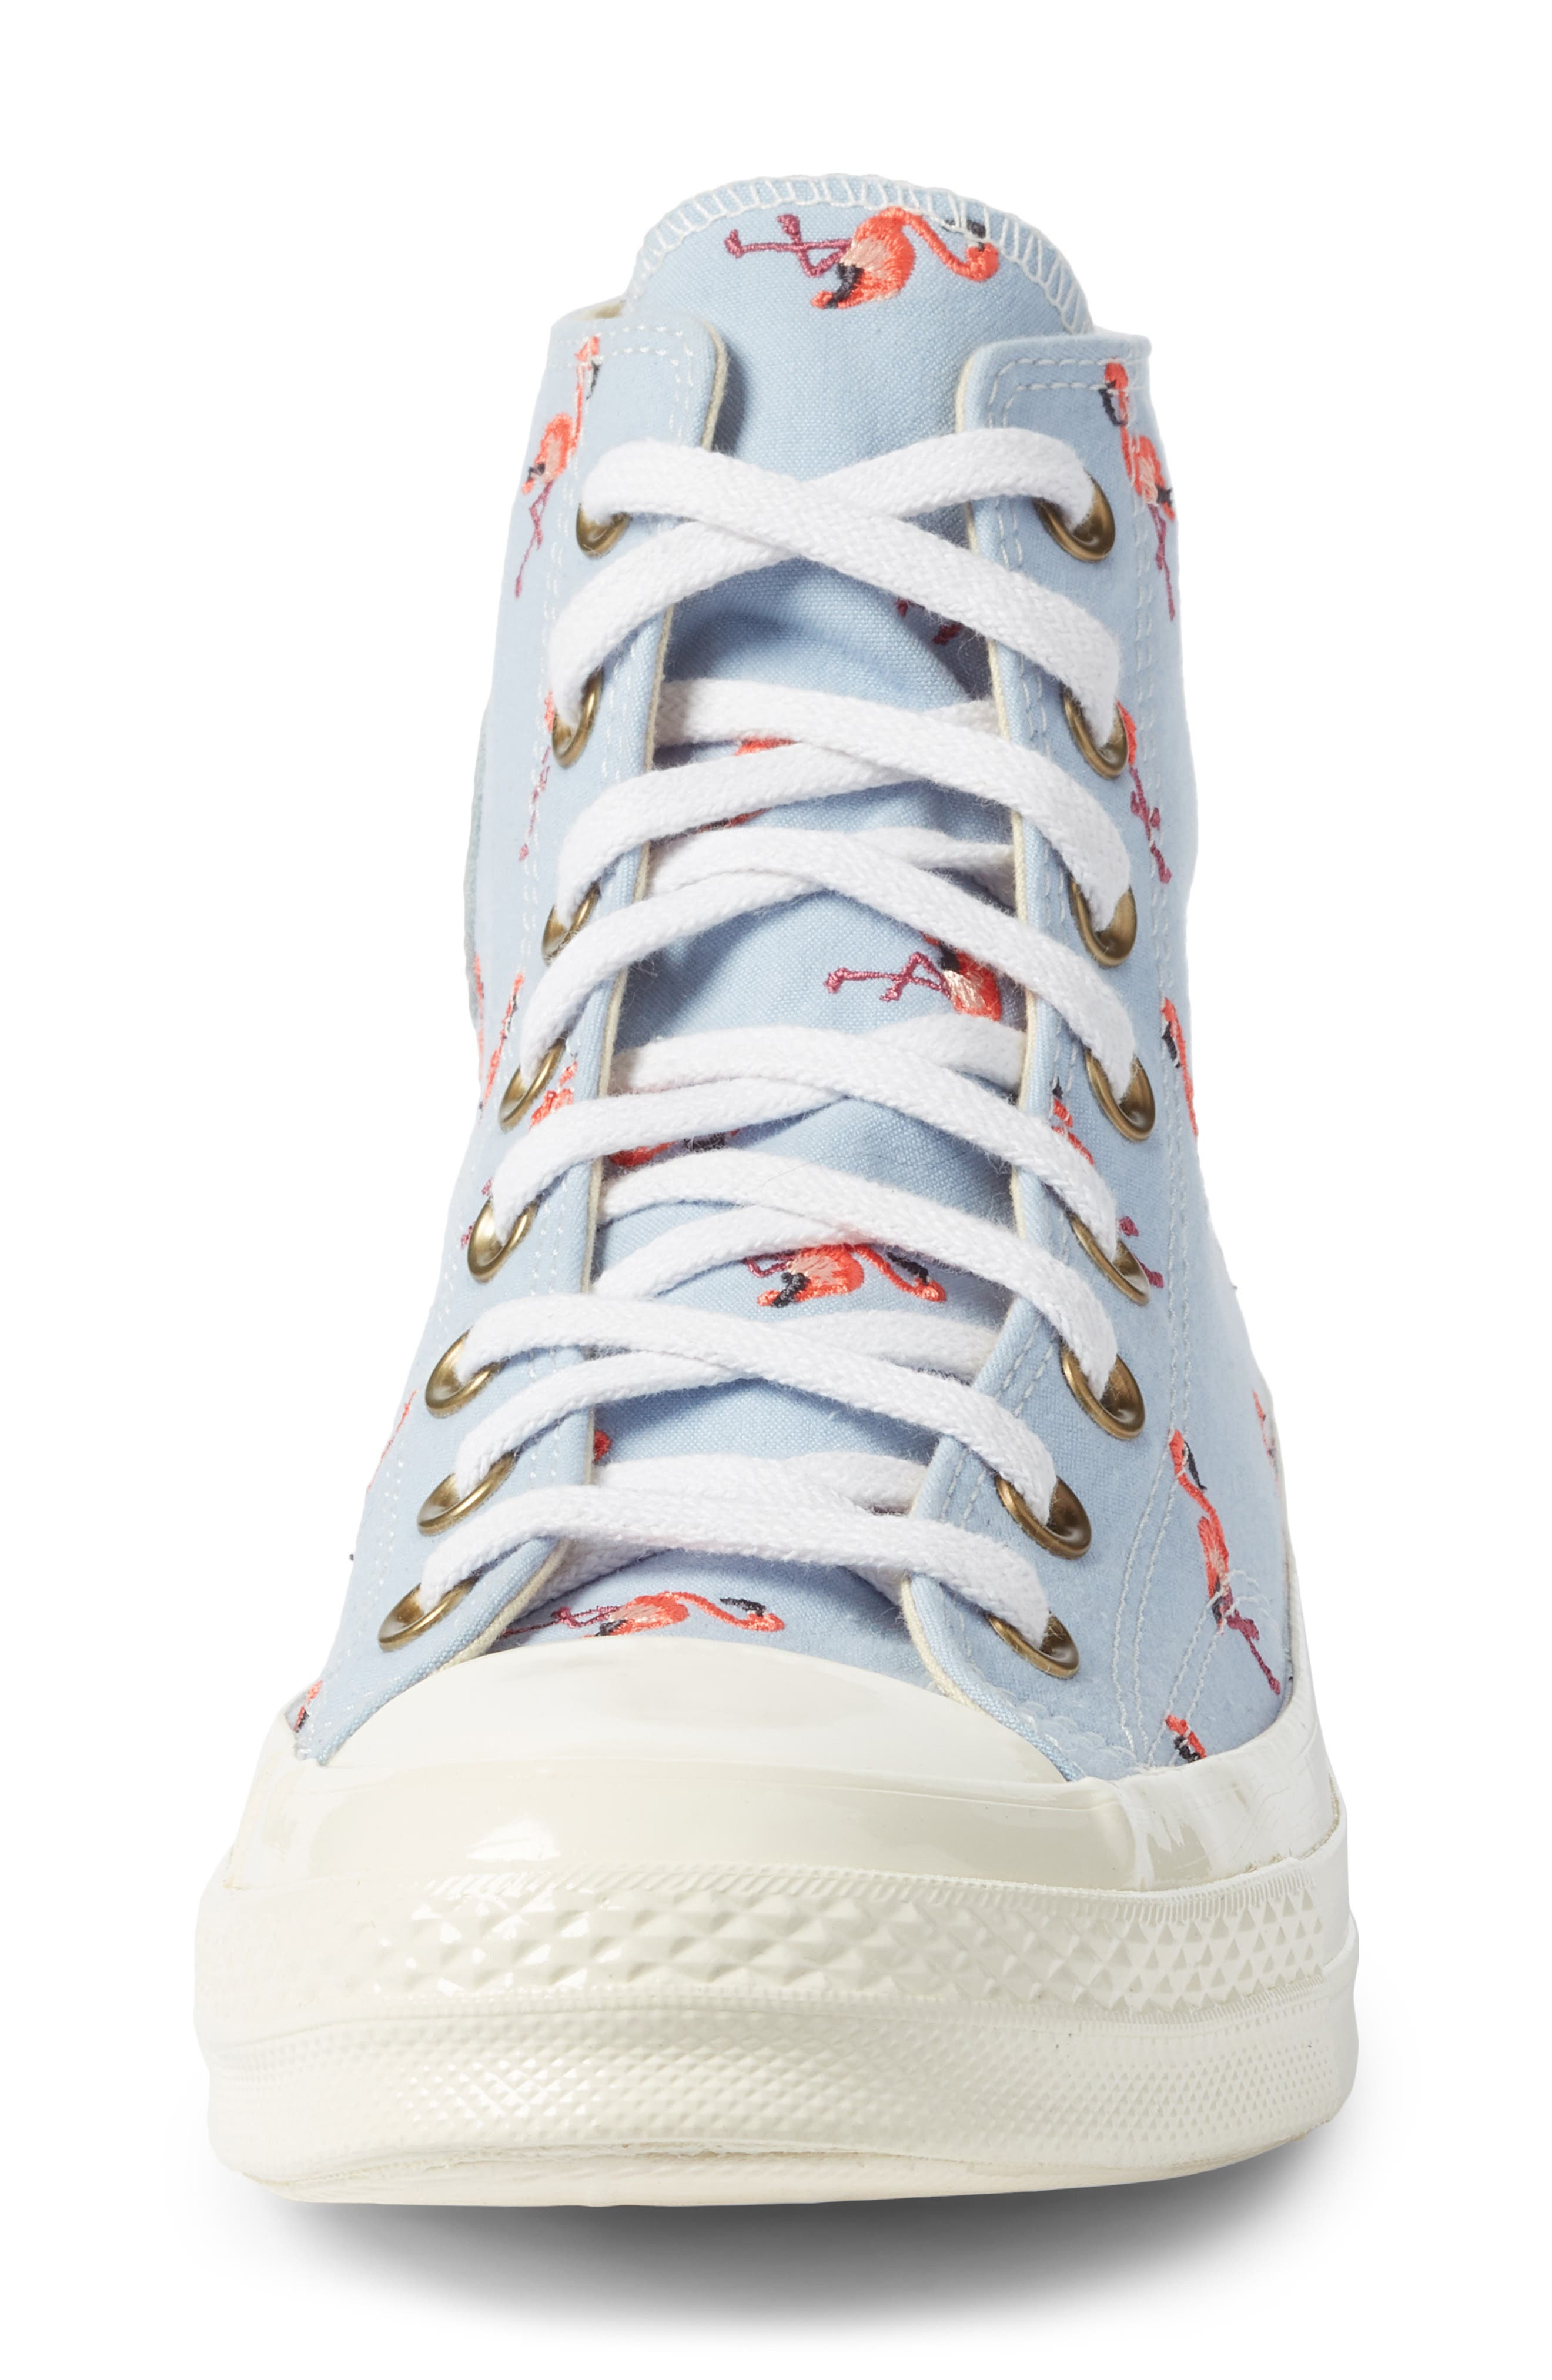 Chuck Taylor<sup>®</sup> All Star<sup>®</sup> Chuck 70 Flamingo Sneaker,                             Alternate thumbnail 4, color,                             Blue Chili